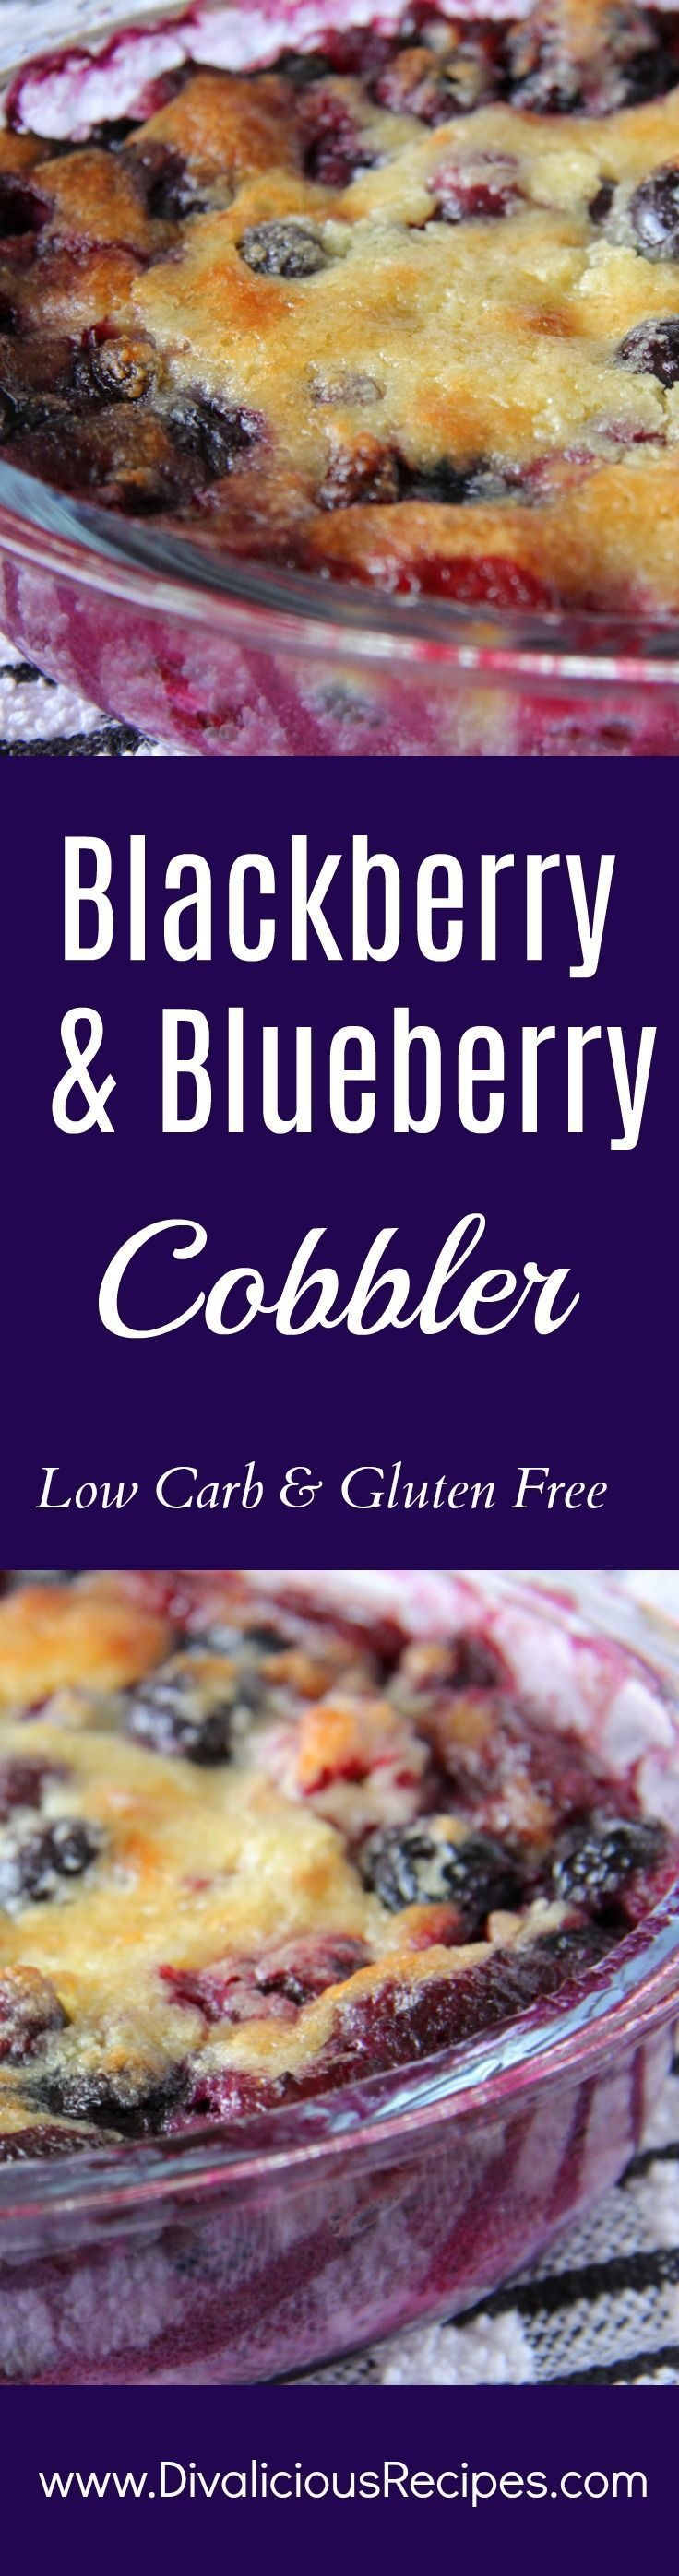 This blackberry and blueberry cobbler is a delicious comfort food dish.    Made with almond flour it is low carb and gluten free deliciousness in a bowl!